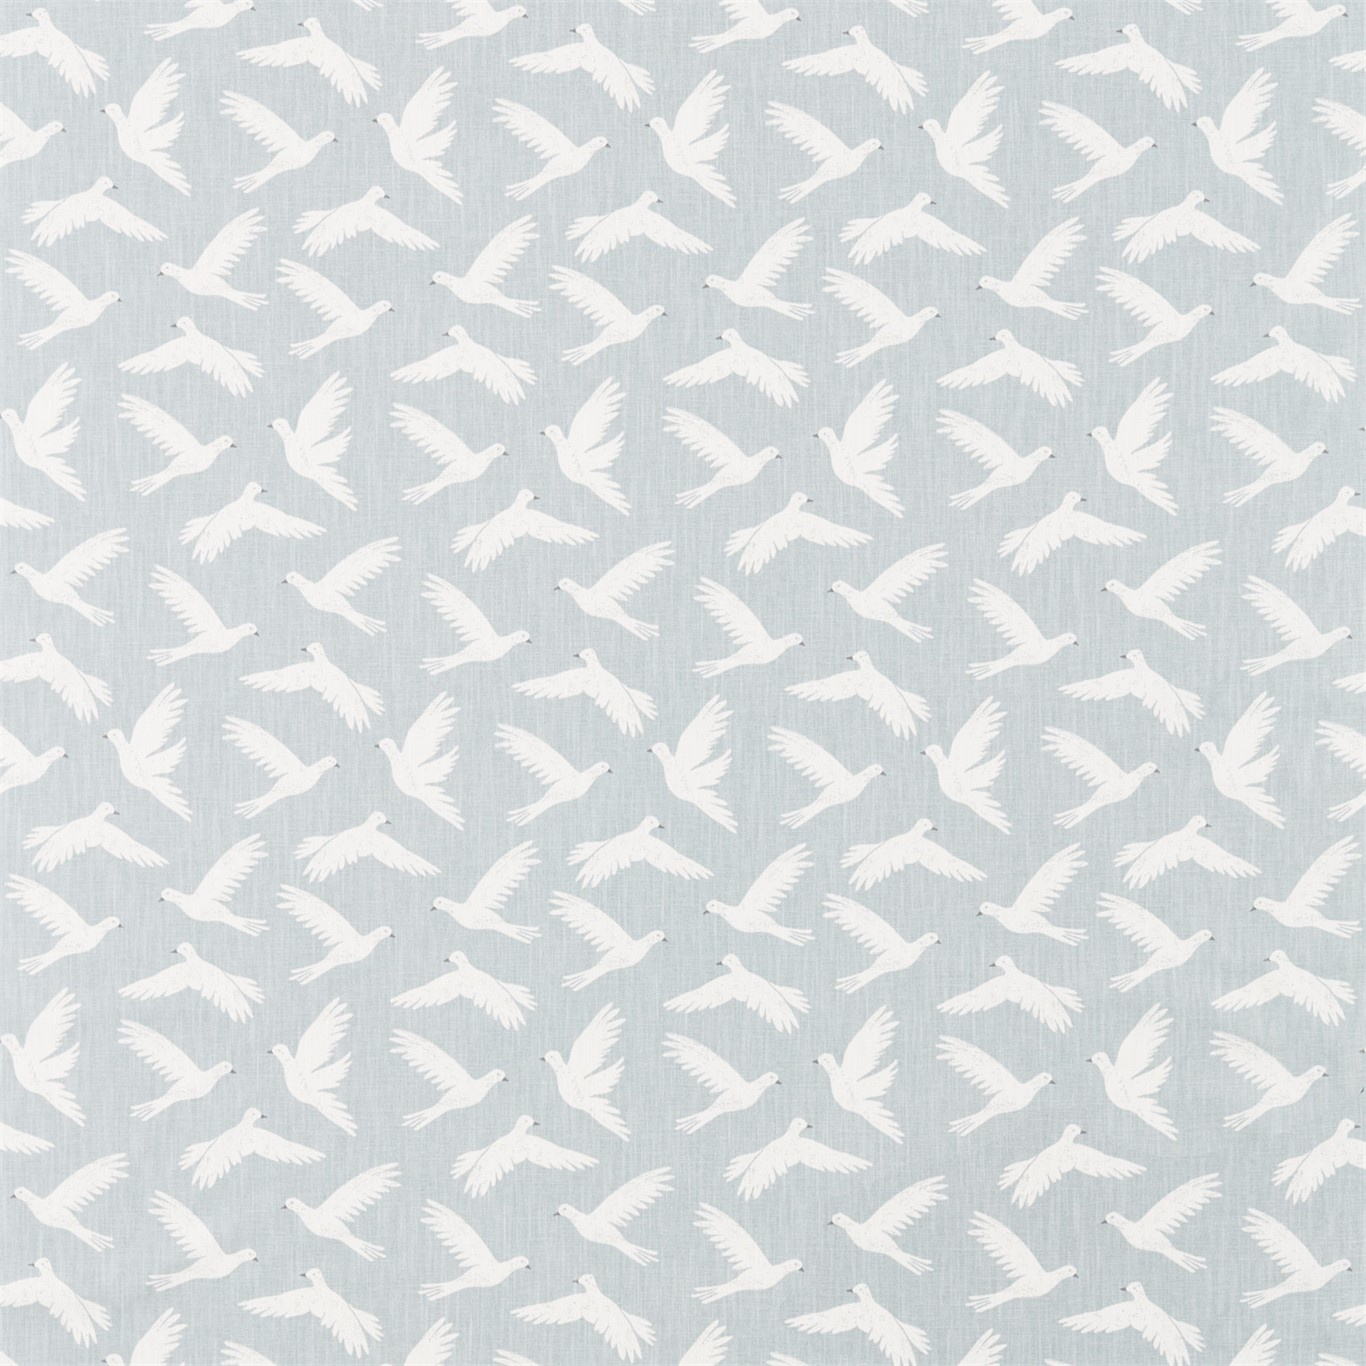 Image of Sanderson Home Paper Doves Mineral Fabric 226353